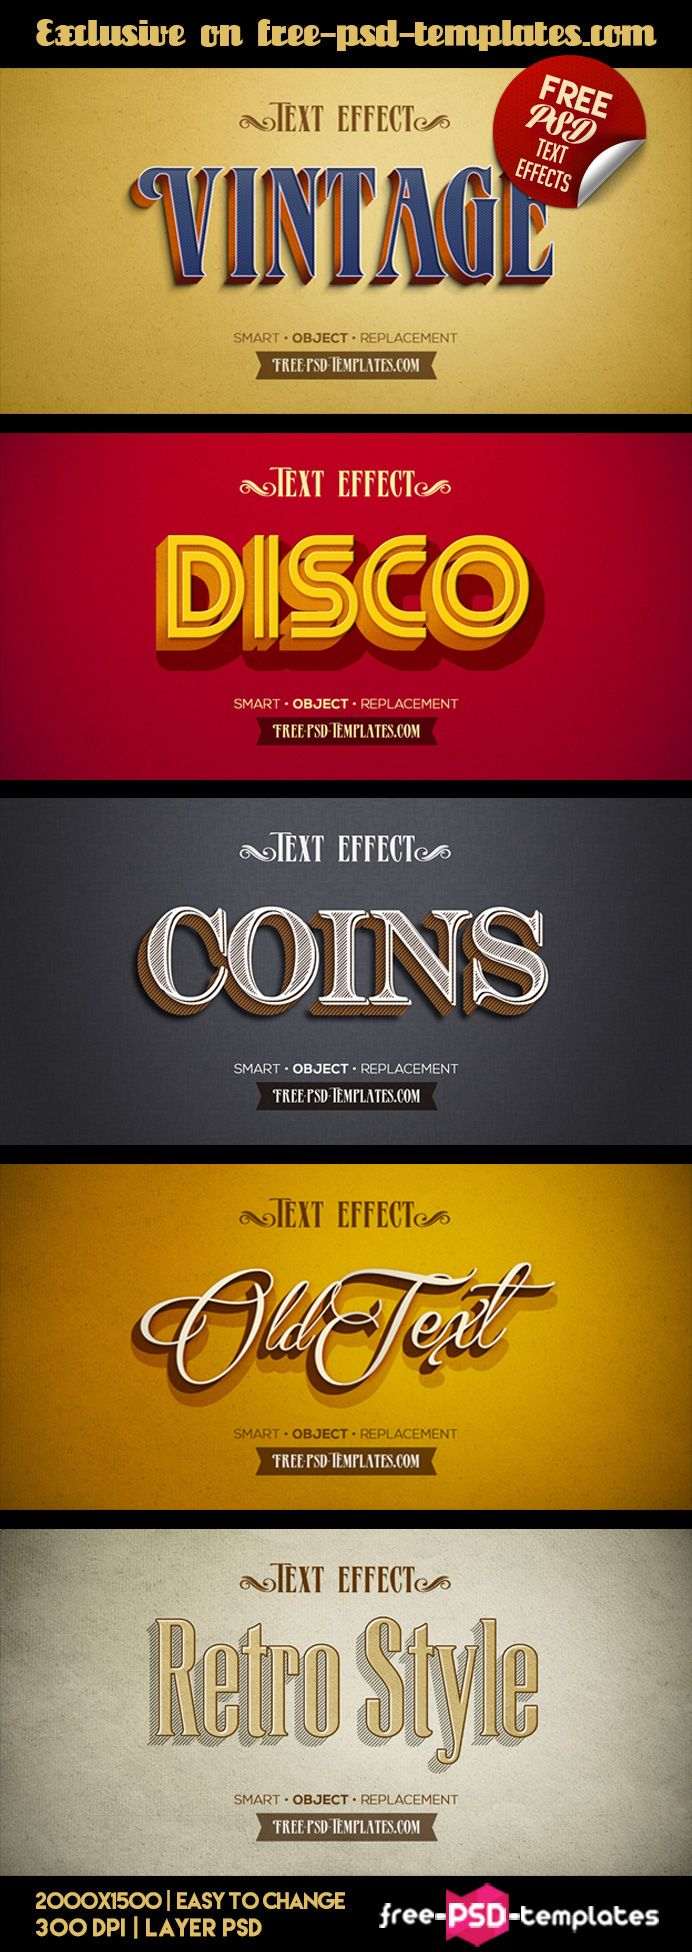 Free Free 5 Retro Vintage Text Effects Template In Psd Pls Enjoy Words Logo Retro Typography Photoshop Text Effects Text Effects